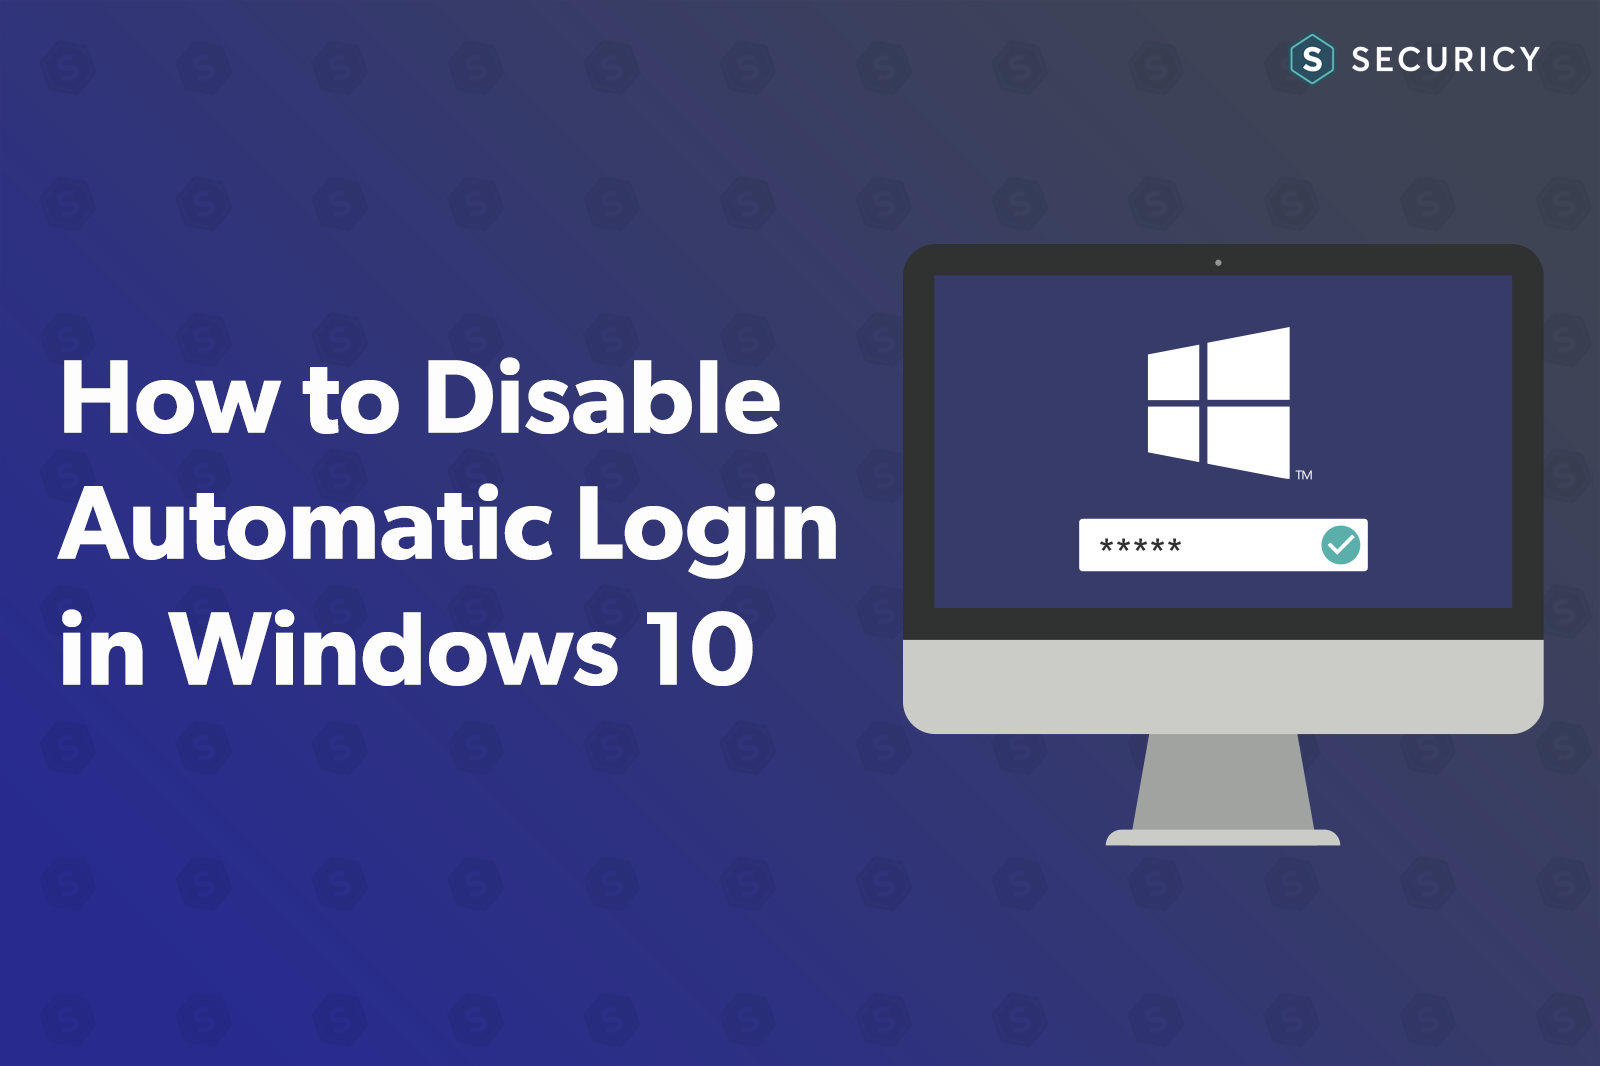 How to Disable Automatic Login in Windows 10